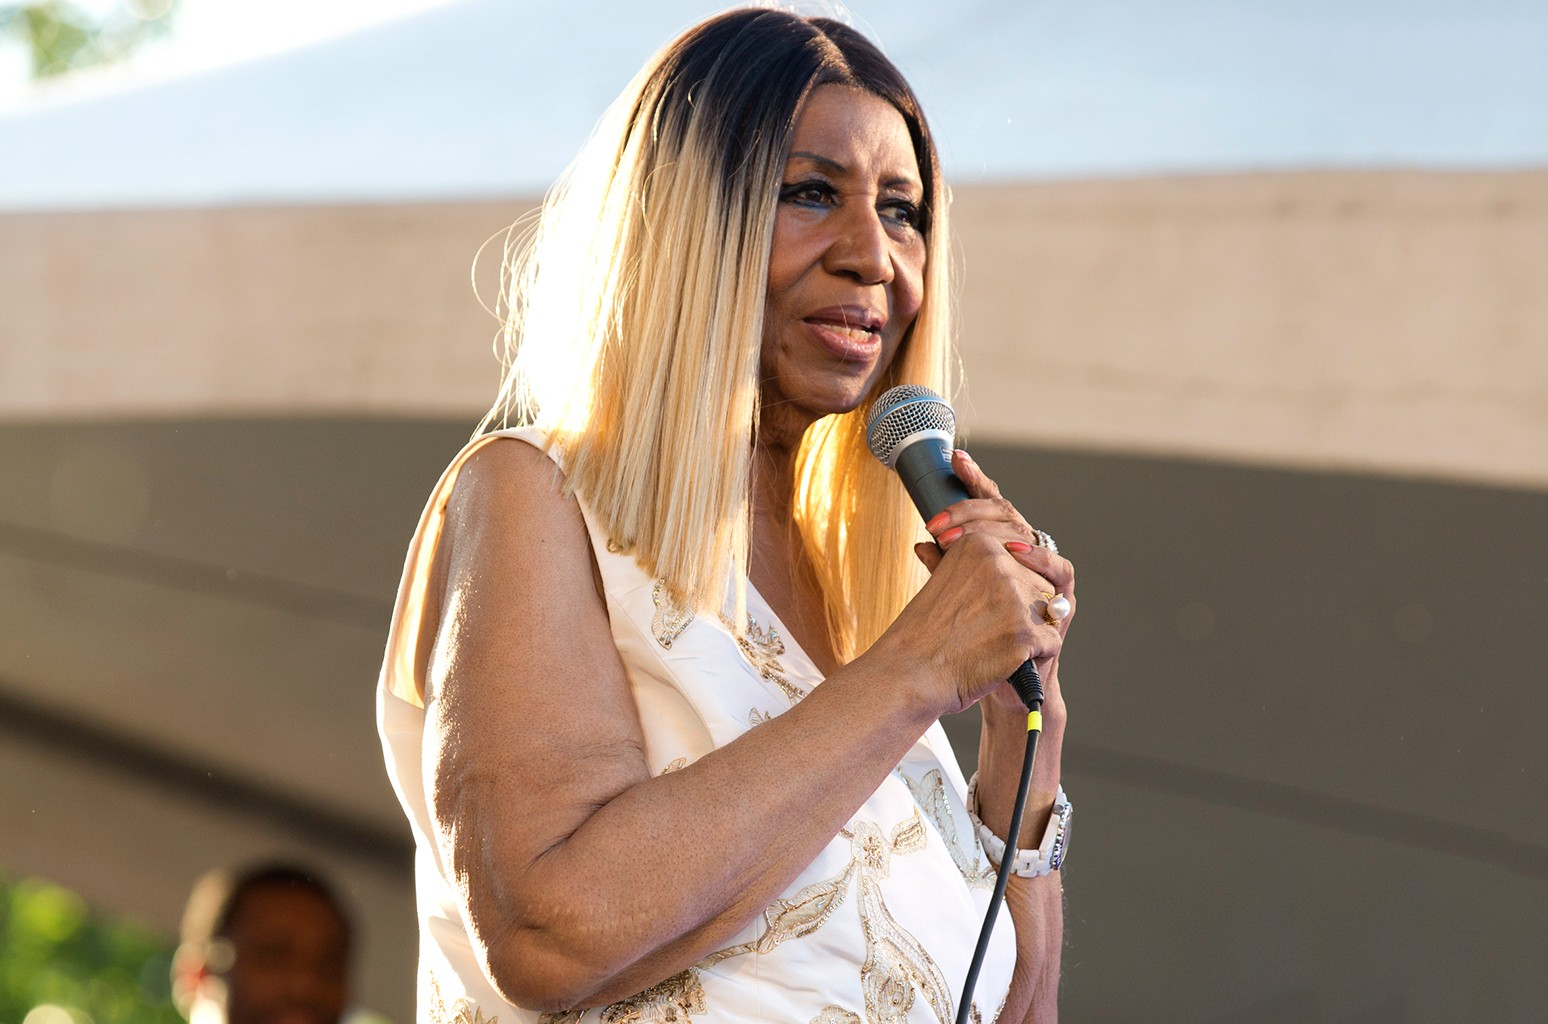 Aretha Franklin performs during the 2017 Detroit Music Weekend on June 9, 2017 in Detroit.